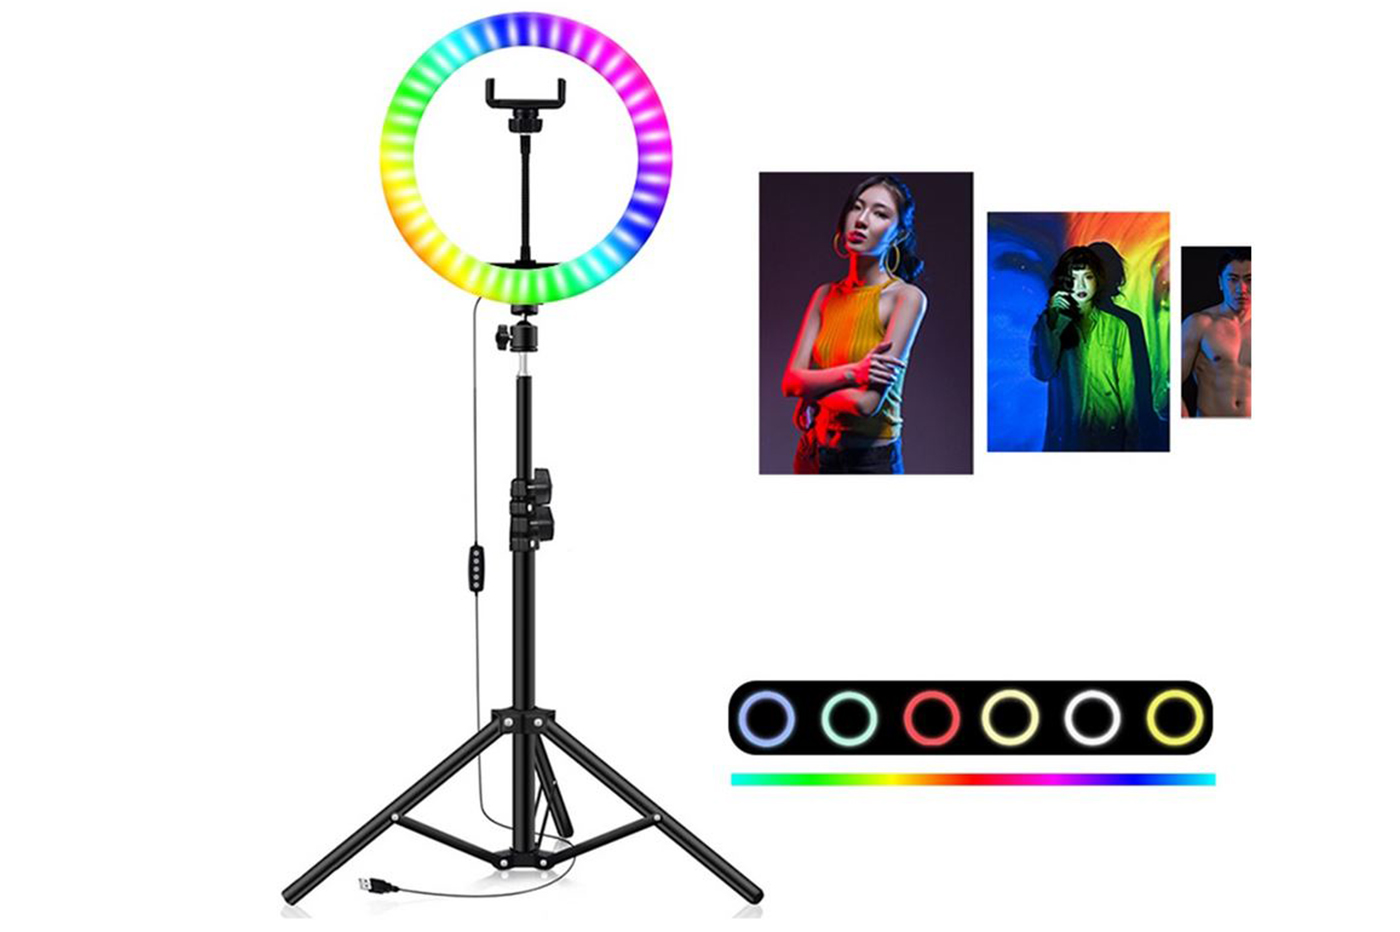 Anello luminoso led multicolor treppiede 20cm supporto cellulare selfie video